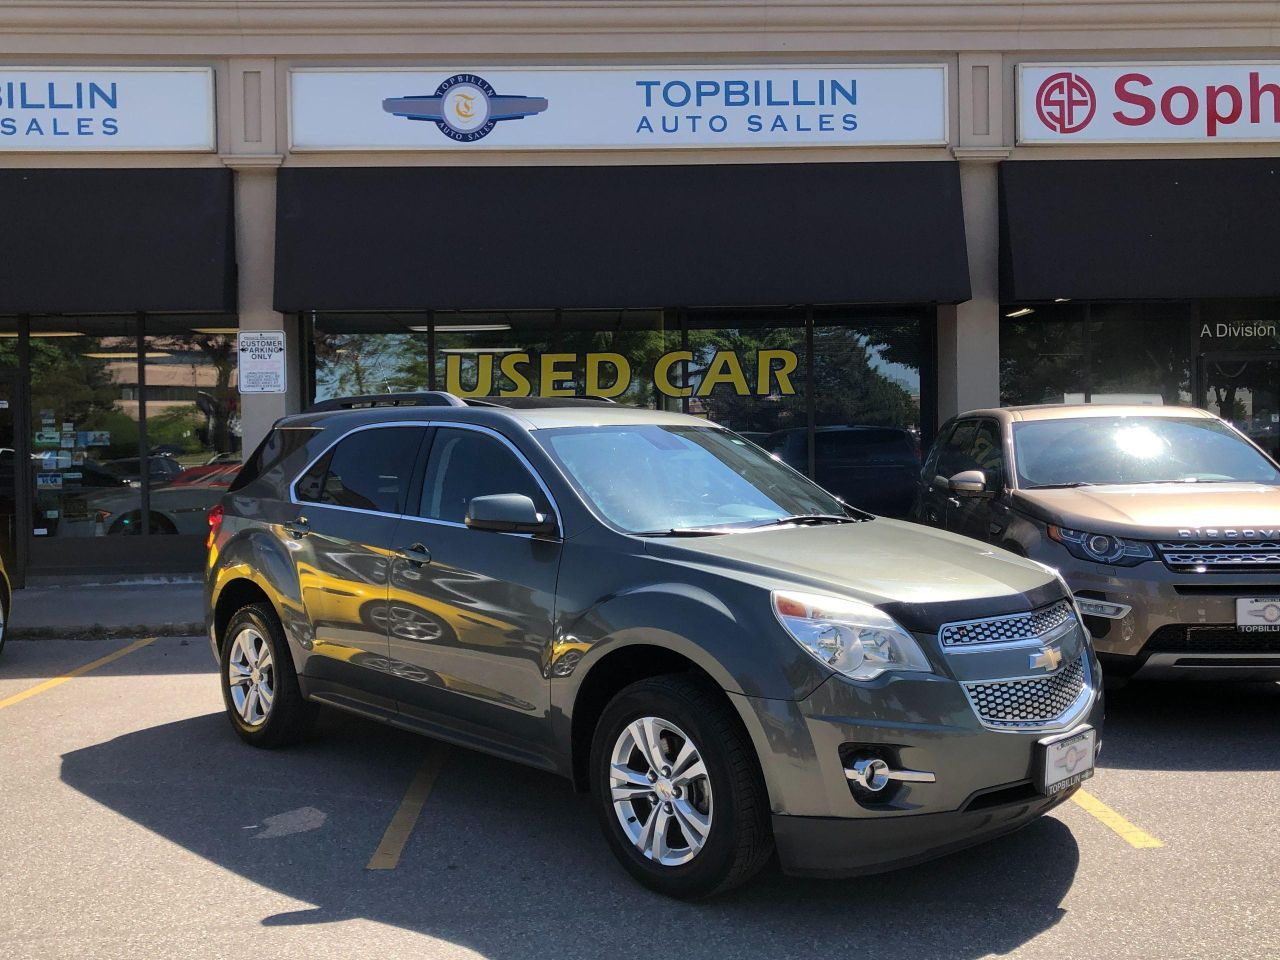 2012 Chevrolet Equinox 2LT AWD, Leather, Roof, B Cam